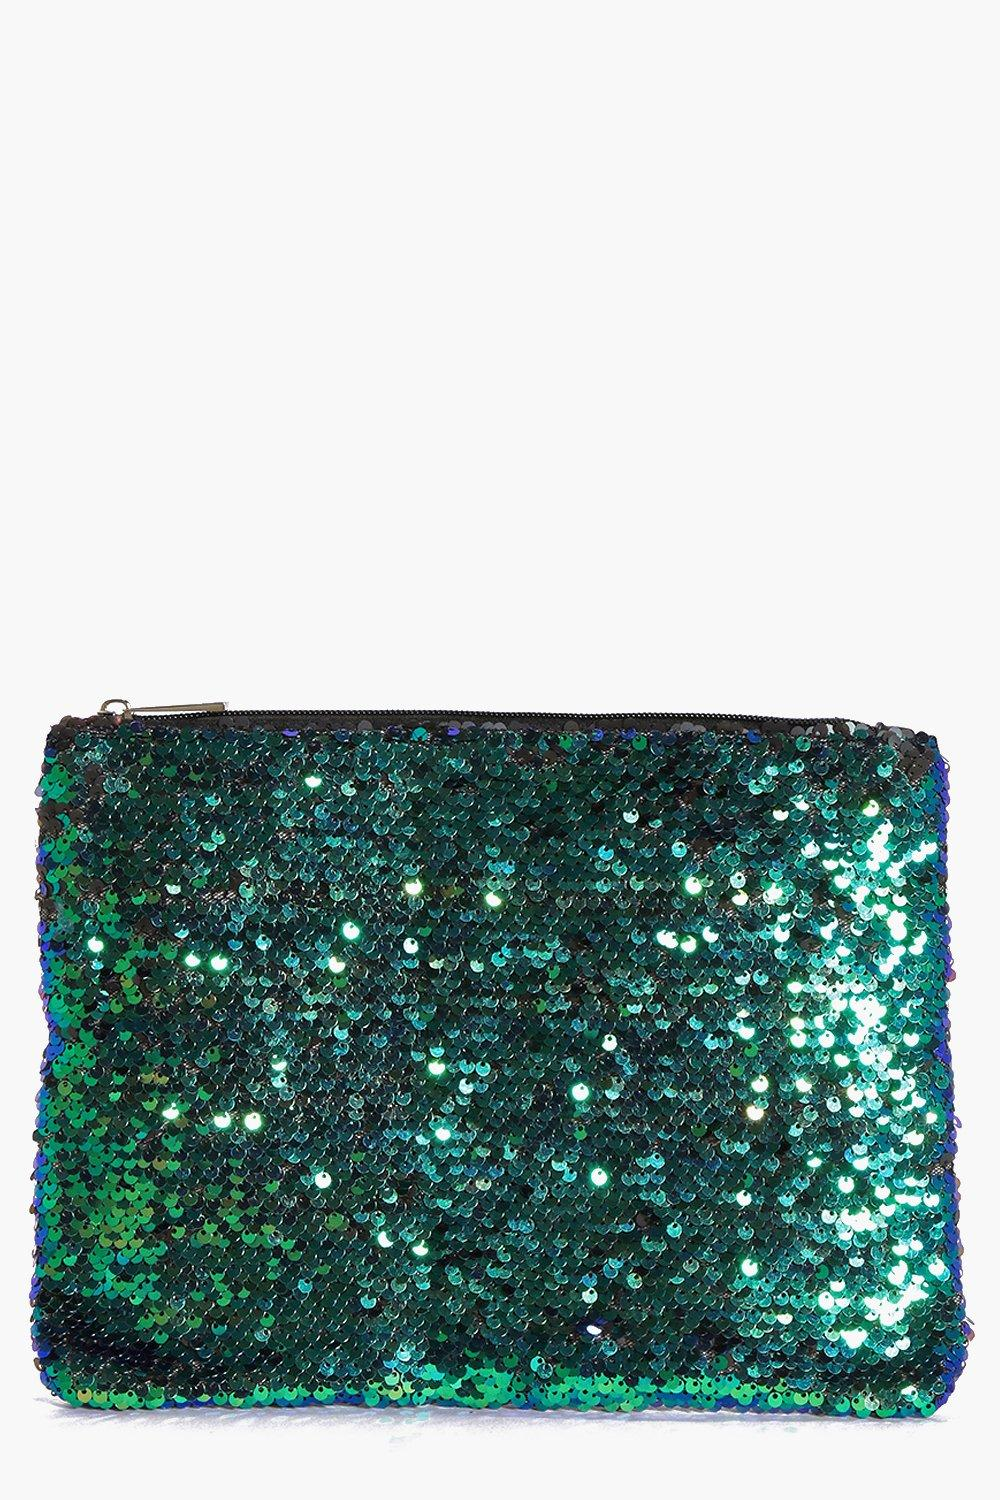 All Over Sequin Clutch Bag multi